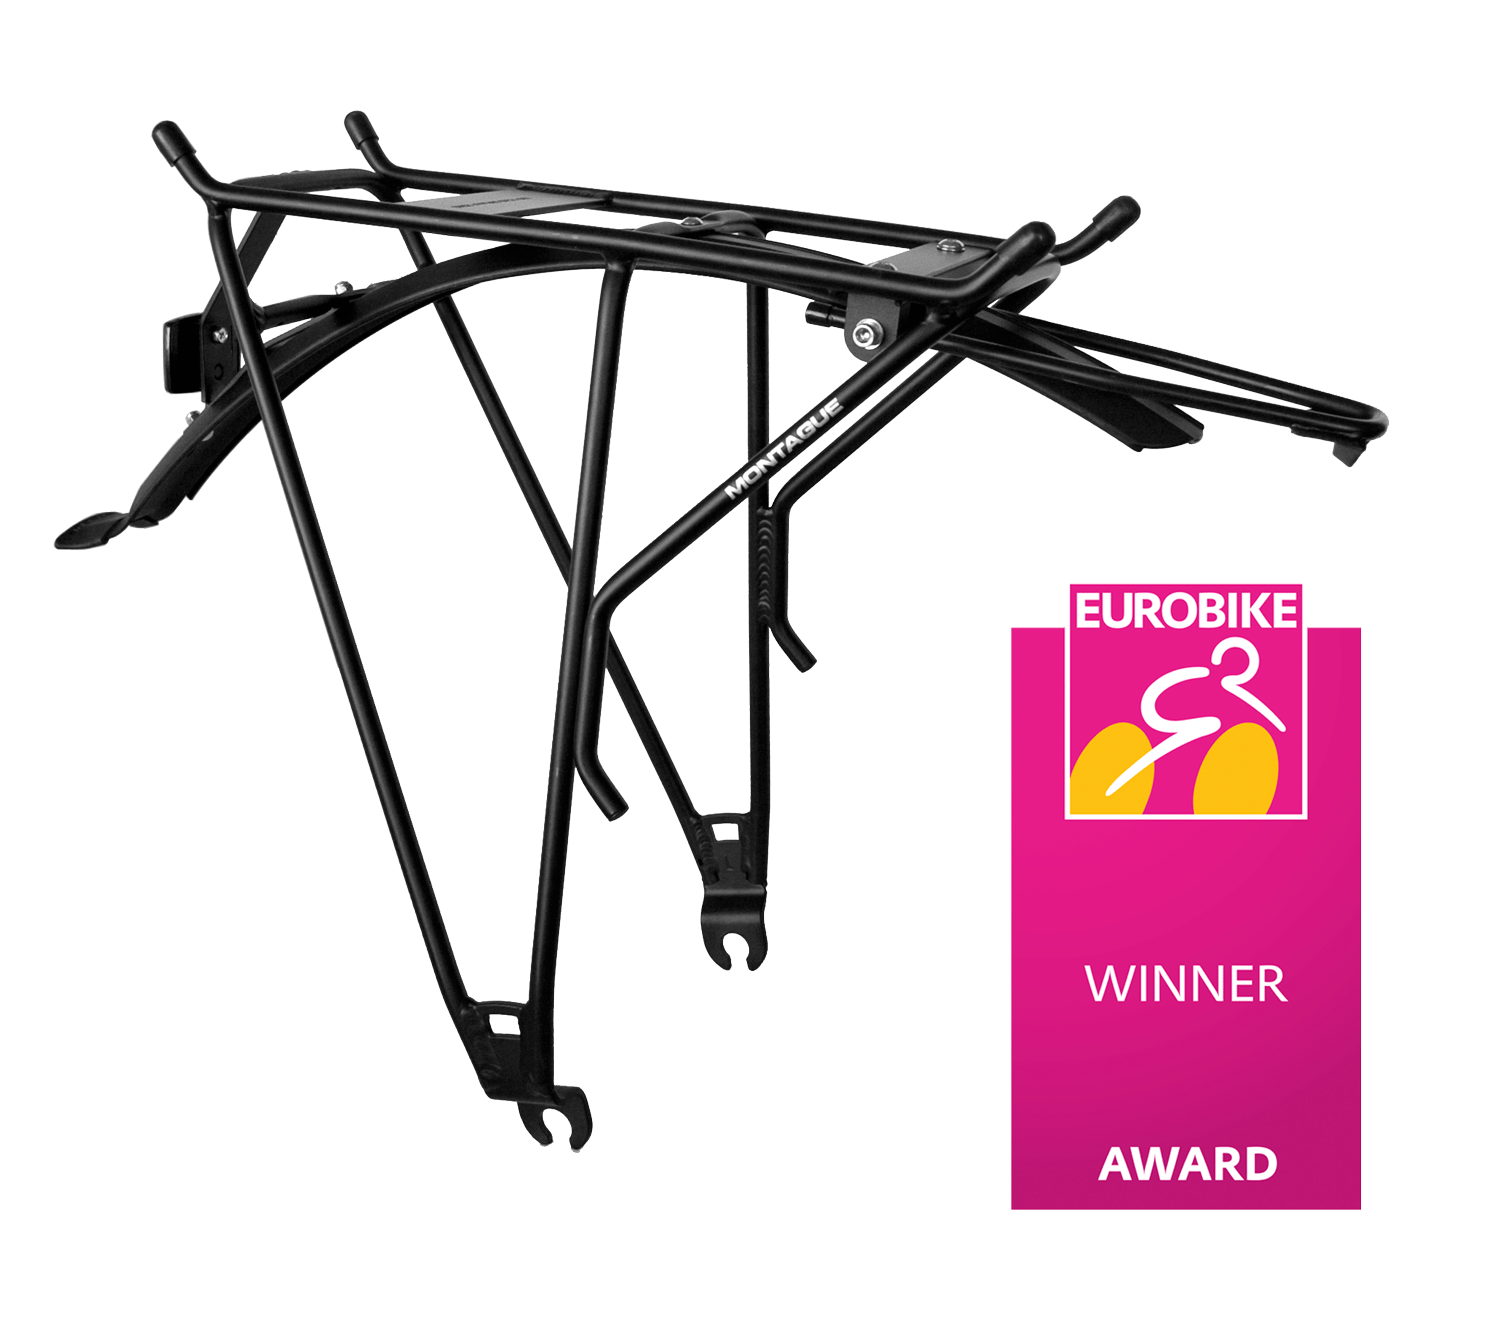 Montague RackStand with Eurobike Award